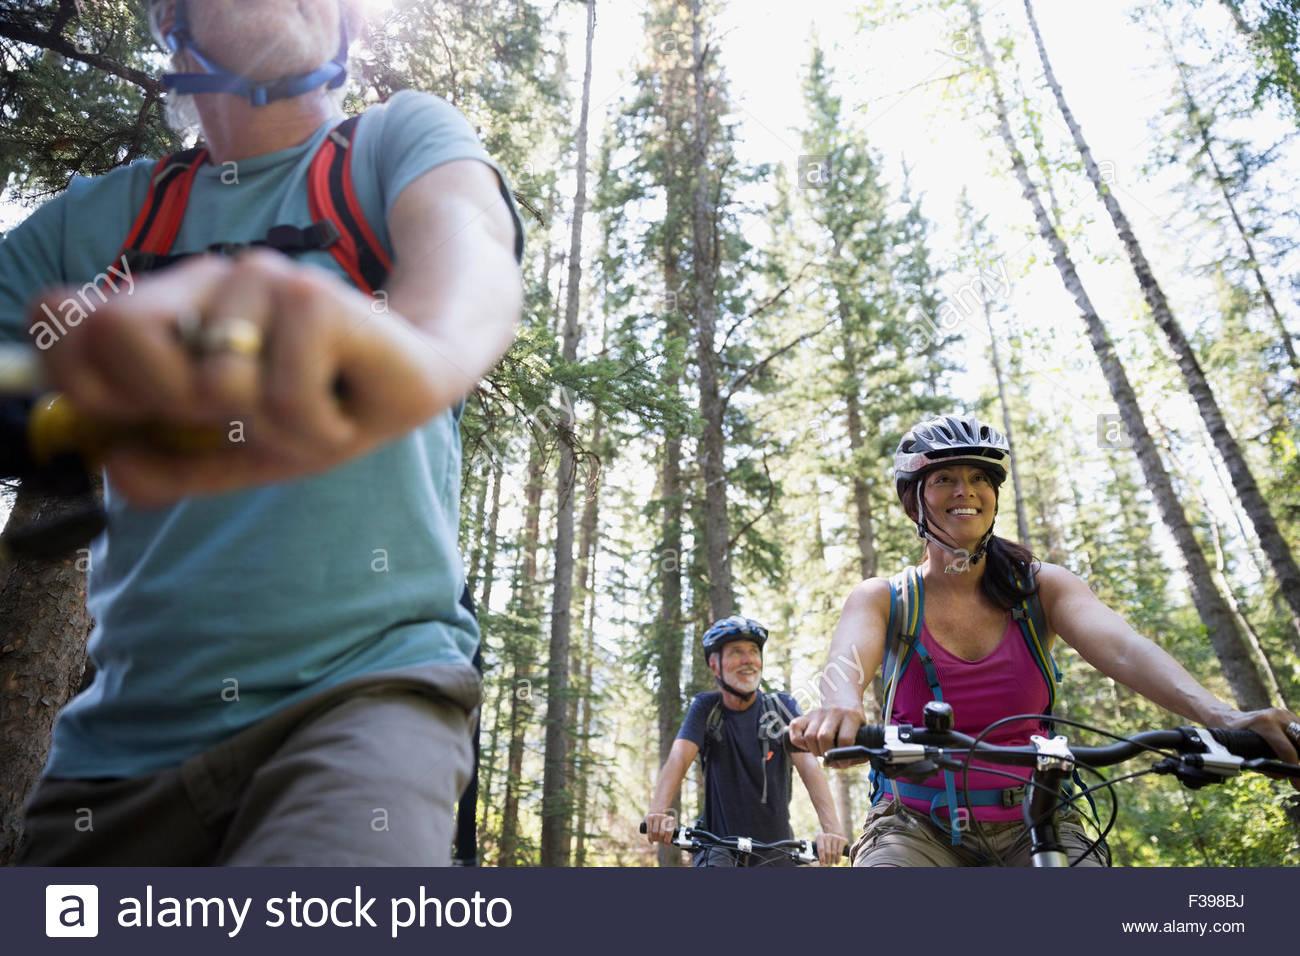 Friends mountain biking below trees in woods - Stock Image